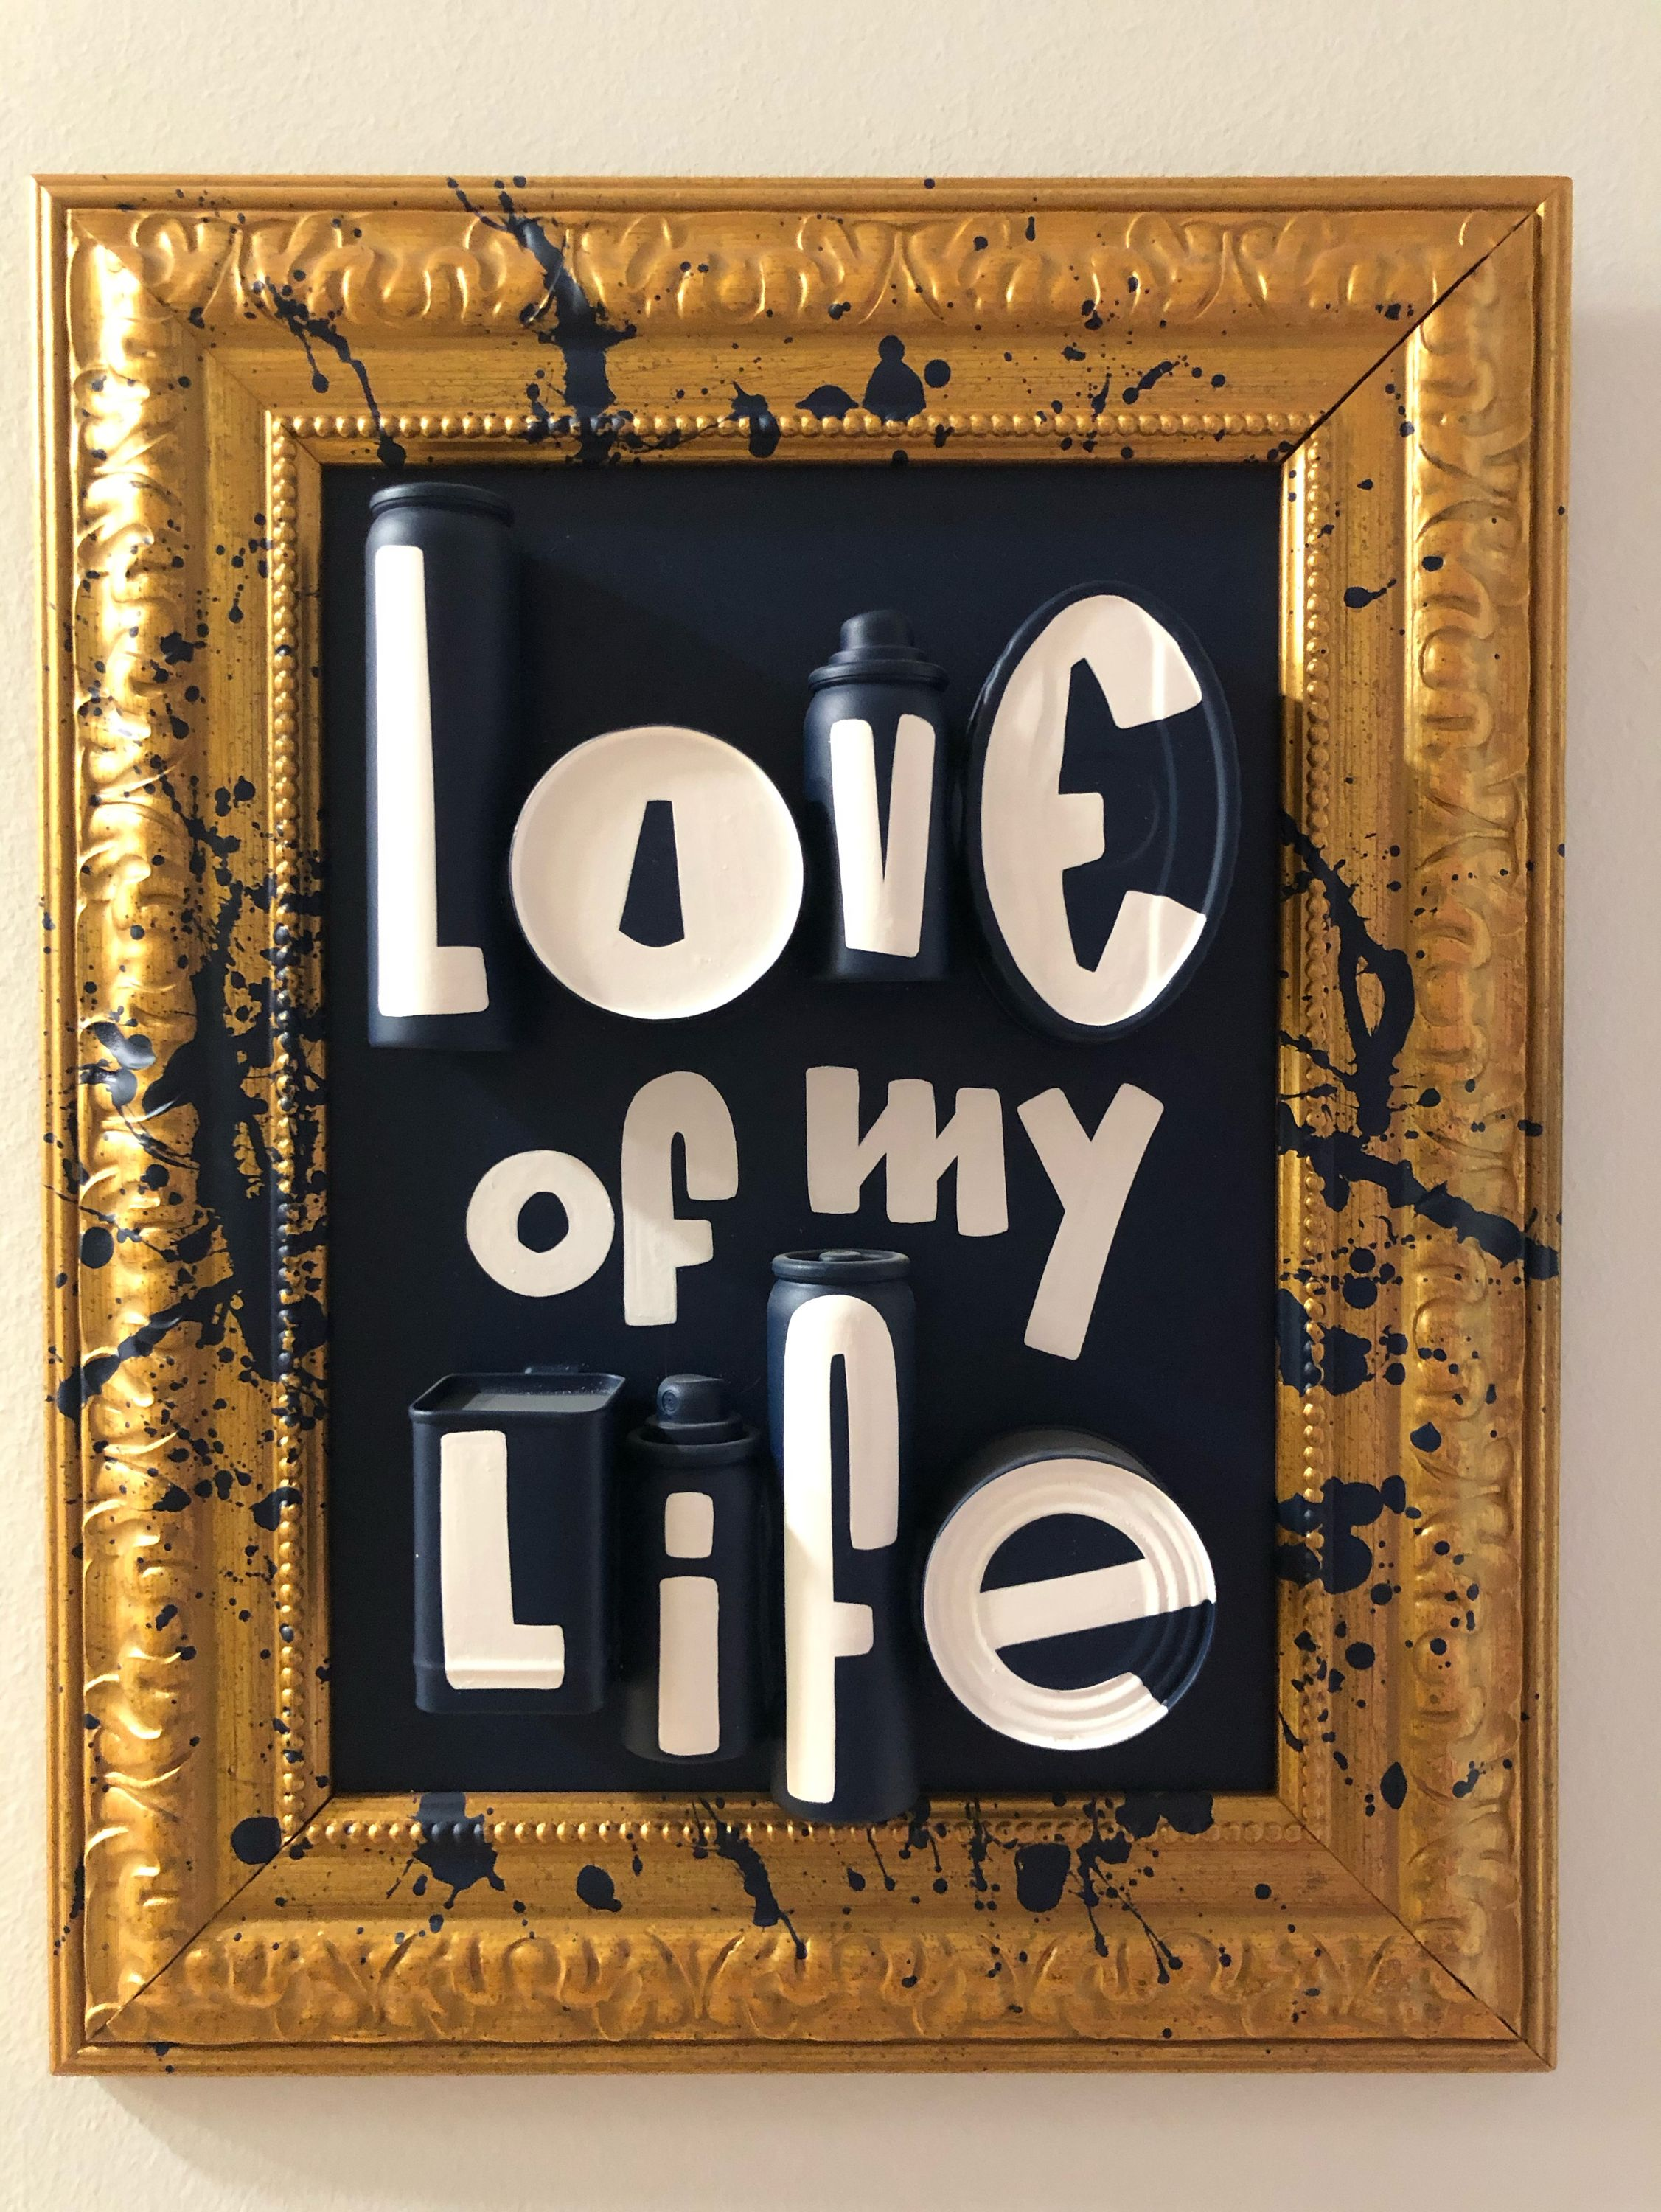 Love of my life by Me lata, Manuel Exposito